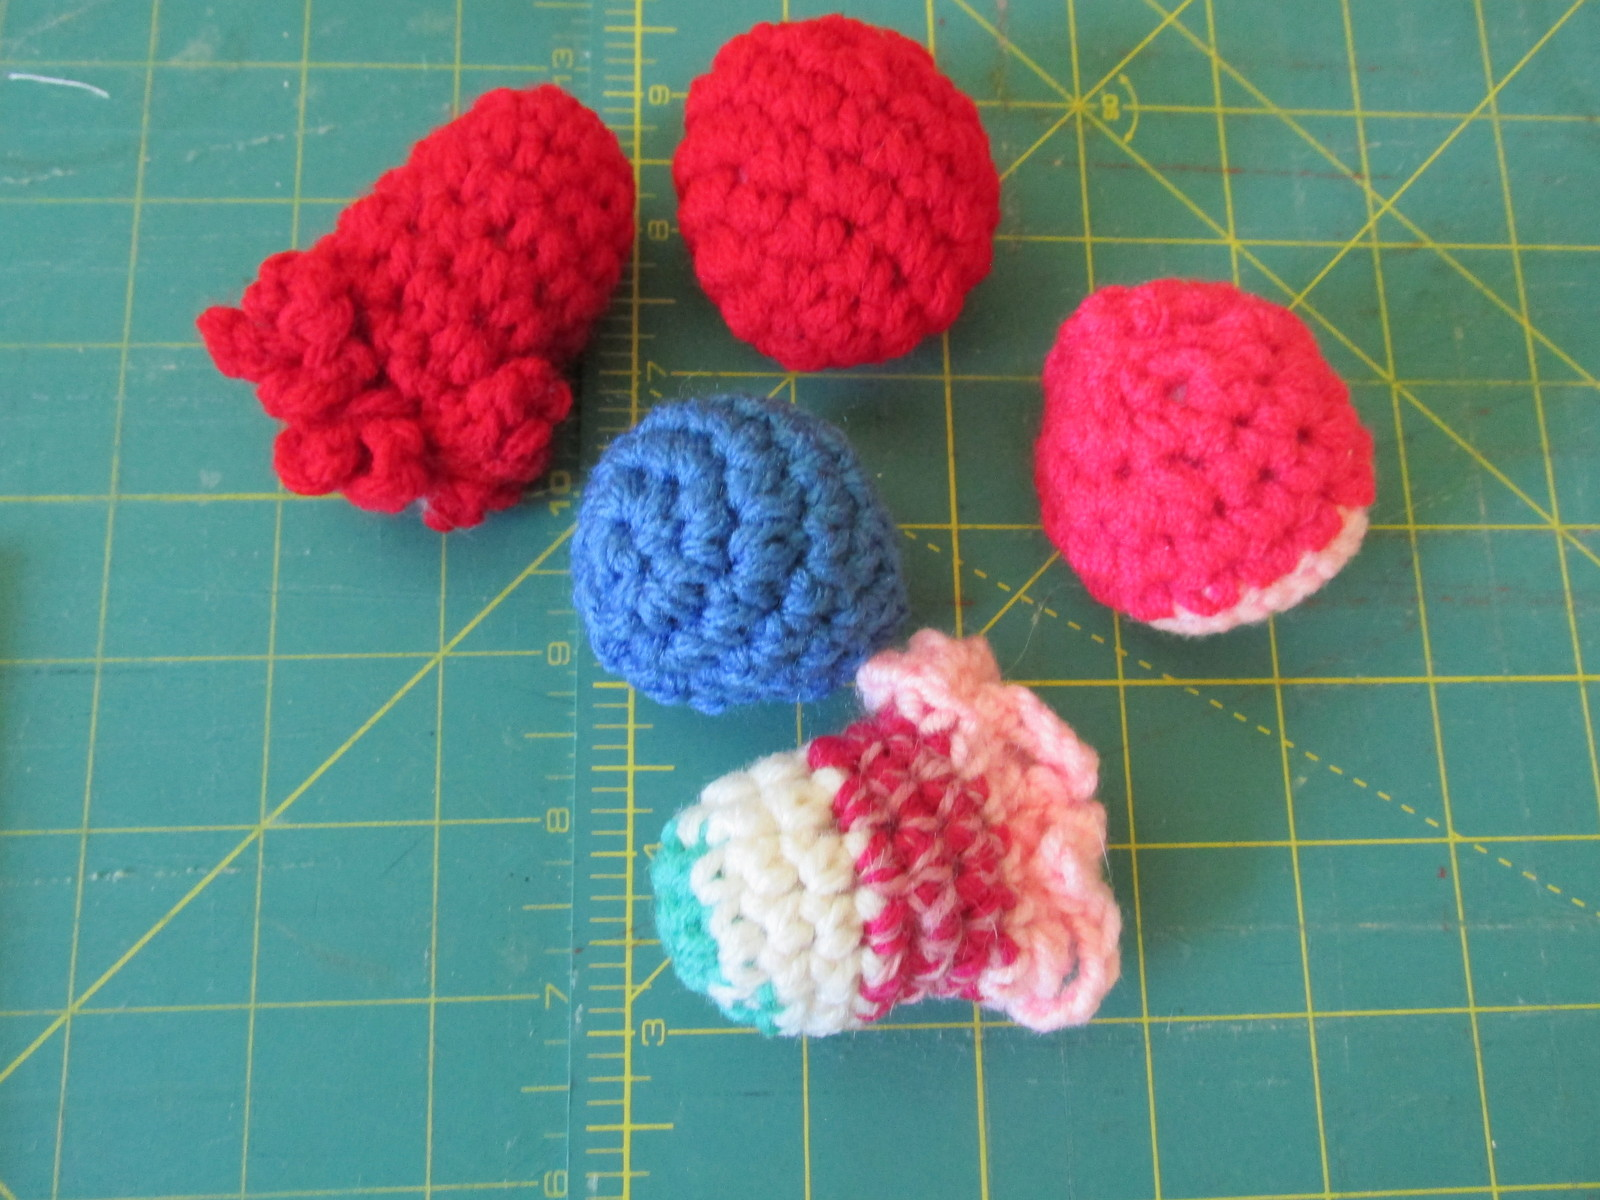 5 Catnip Crocheted Cat Toys  image 1